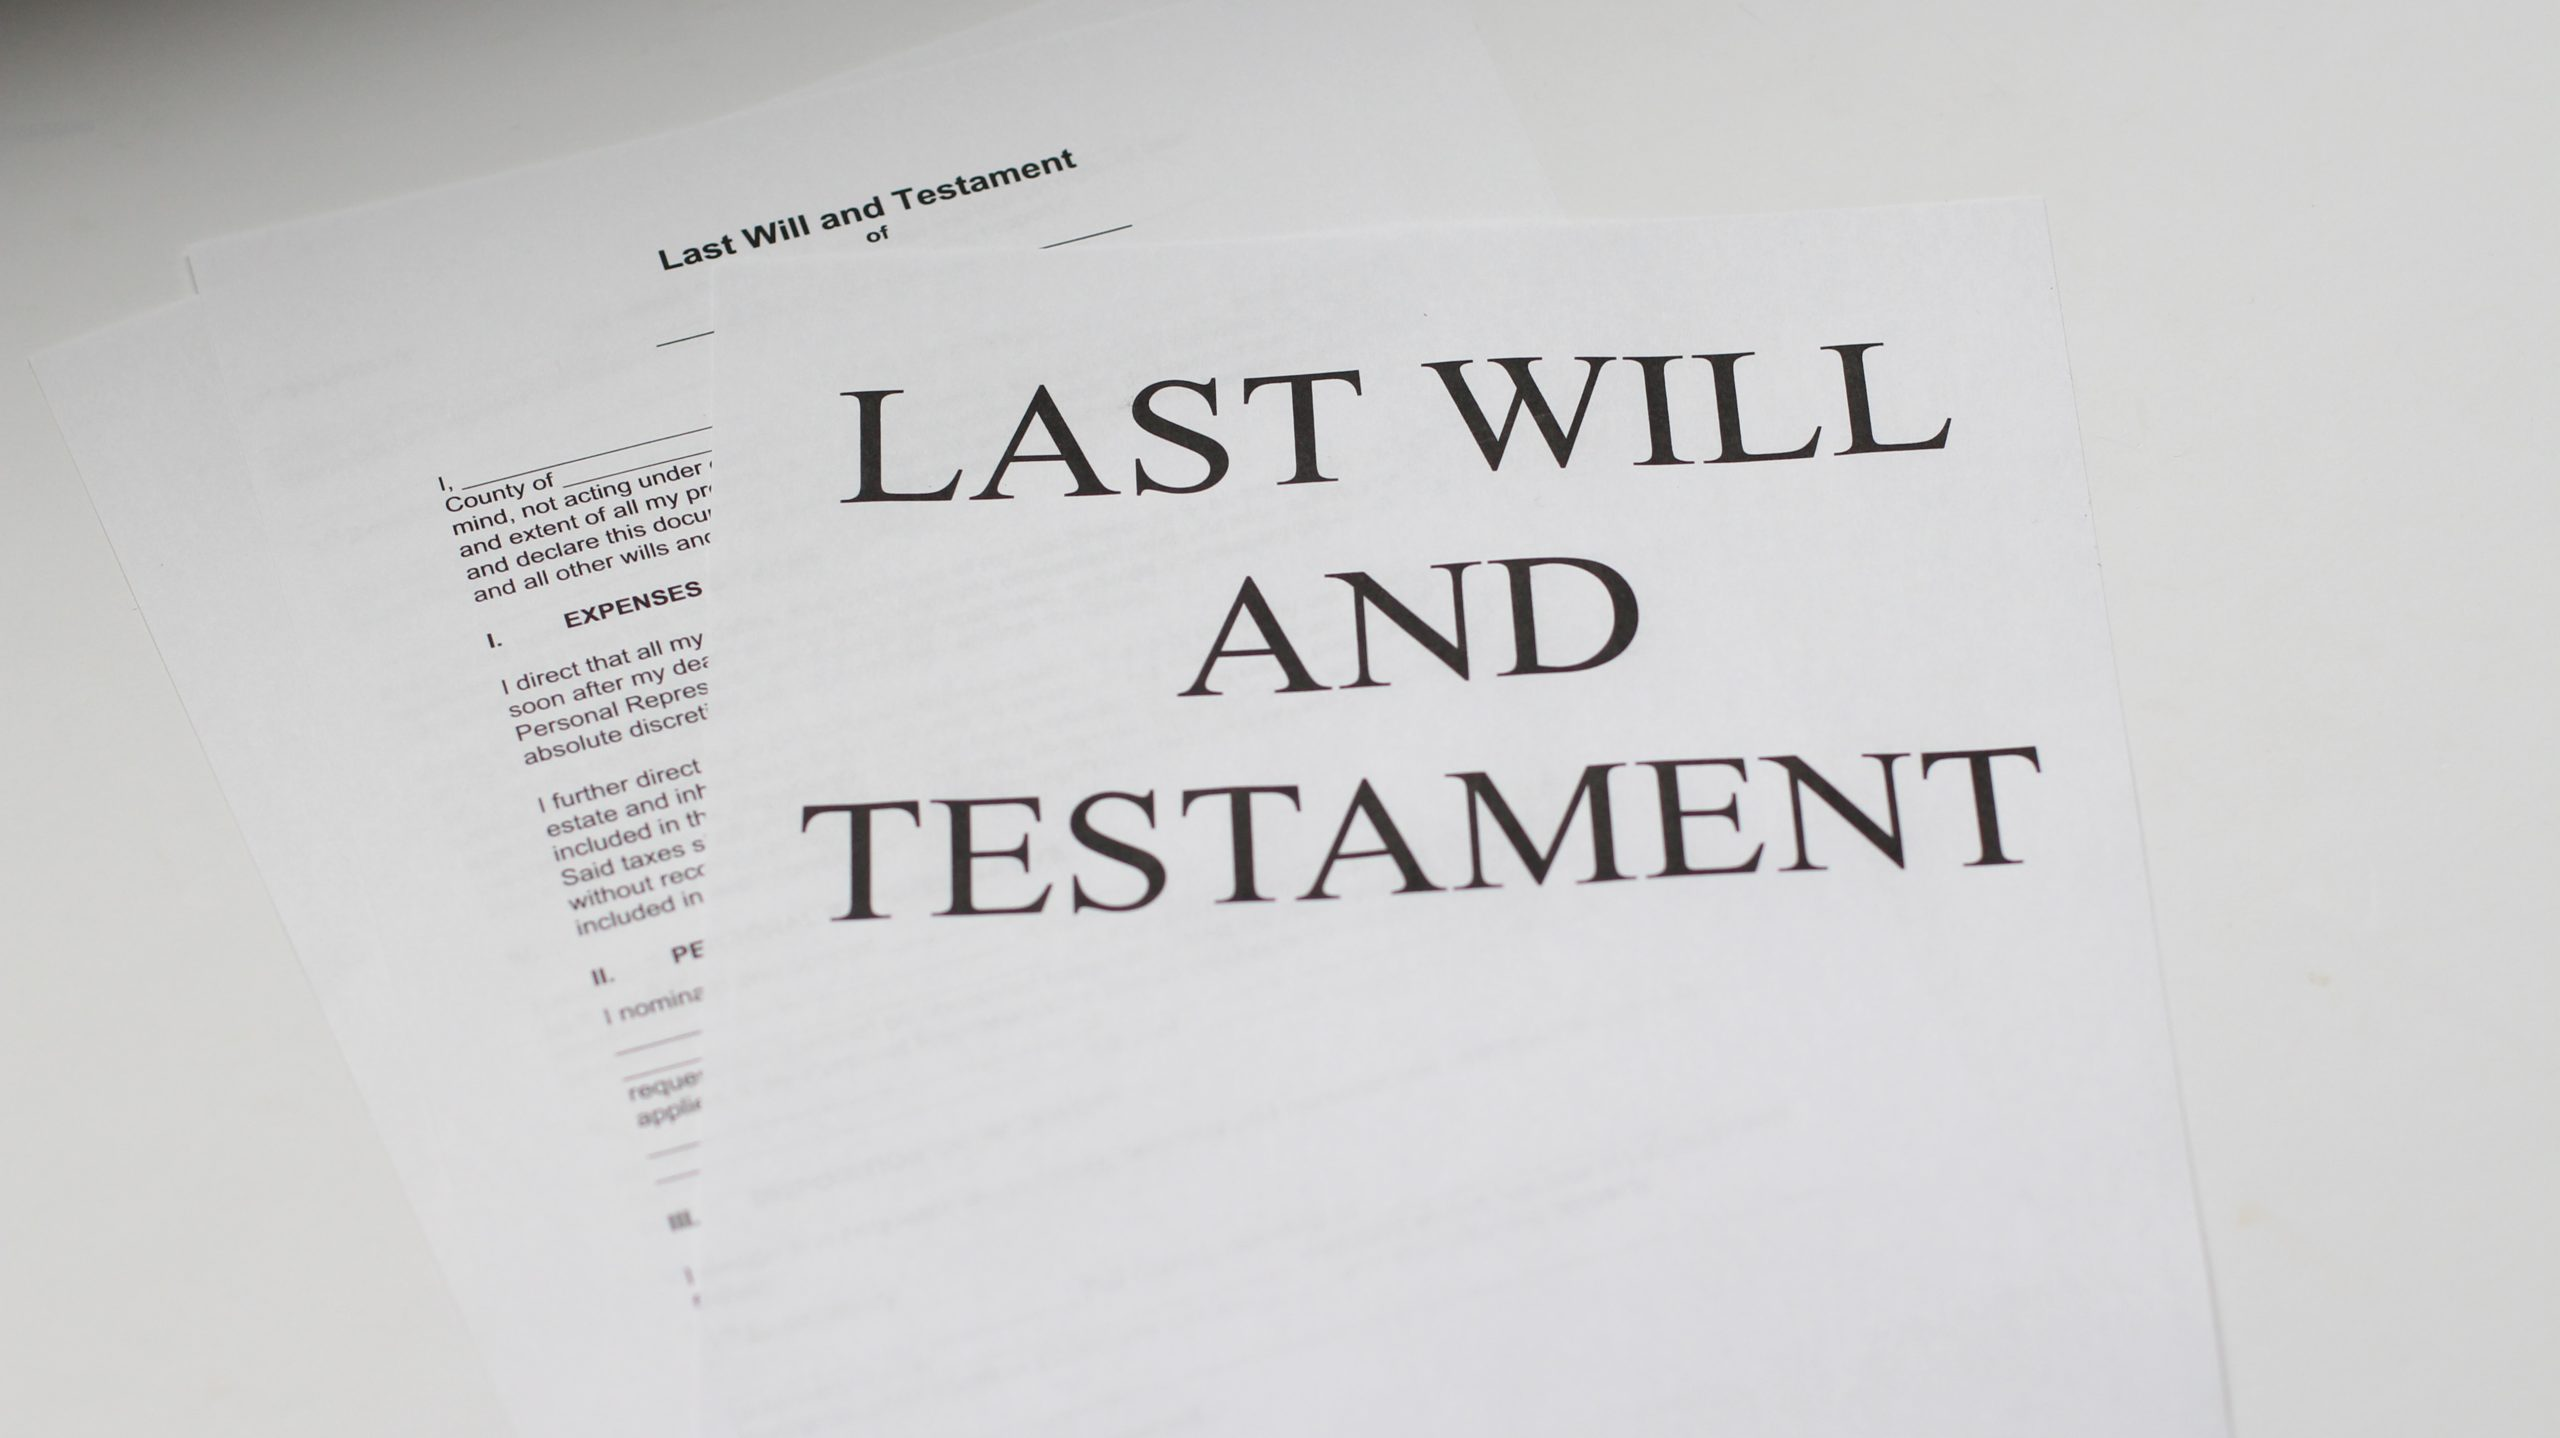 John Szepietowski Considers the Decision to Remove a Child from a Will